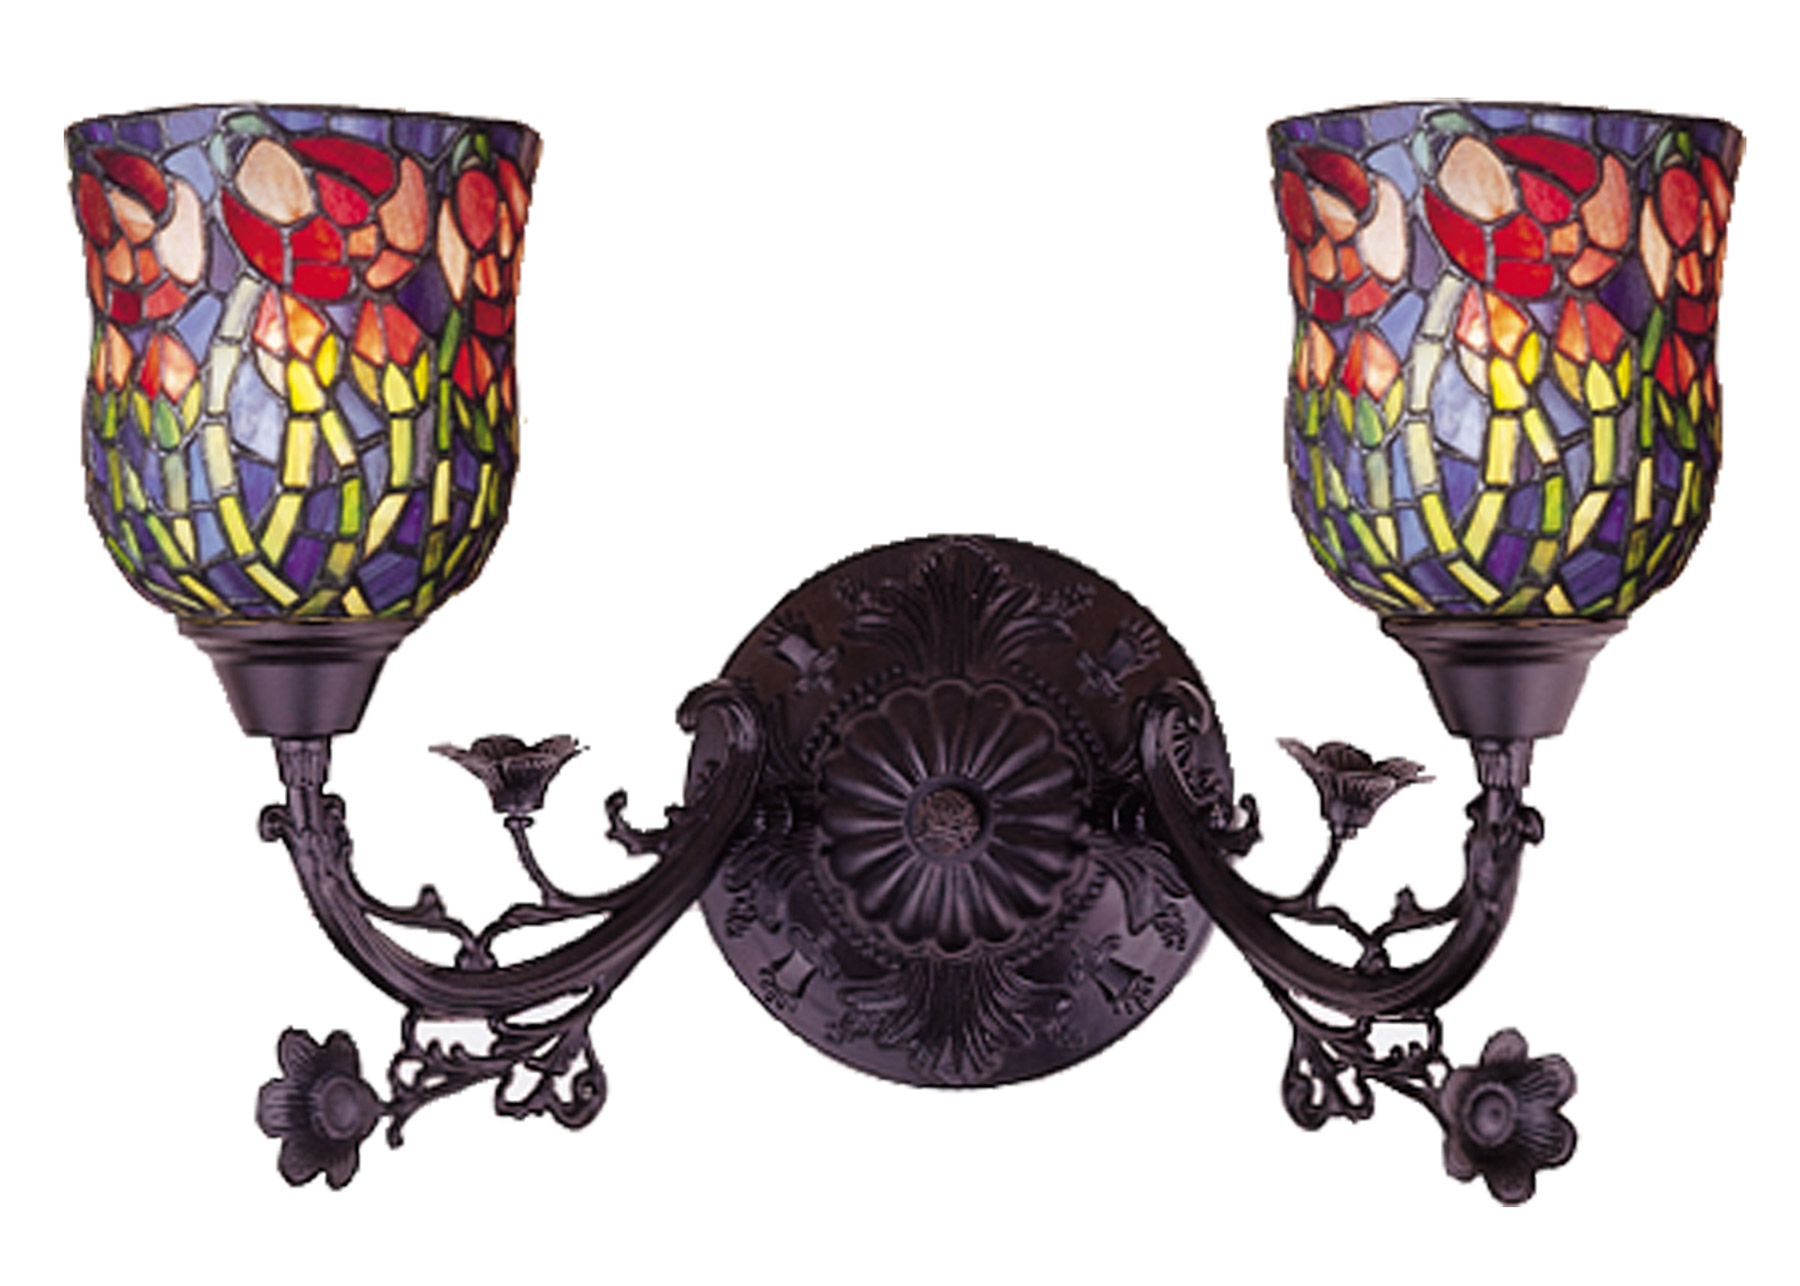 36911 red rosebud wall sconce meyda 36911 red rosebud wall sconce amipublicfo Image collections